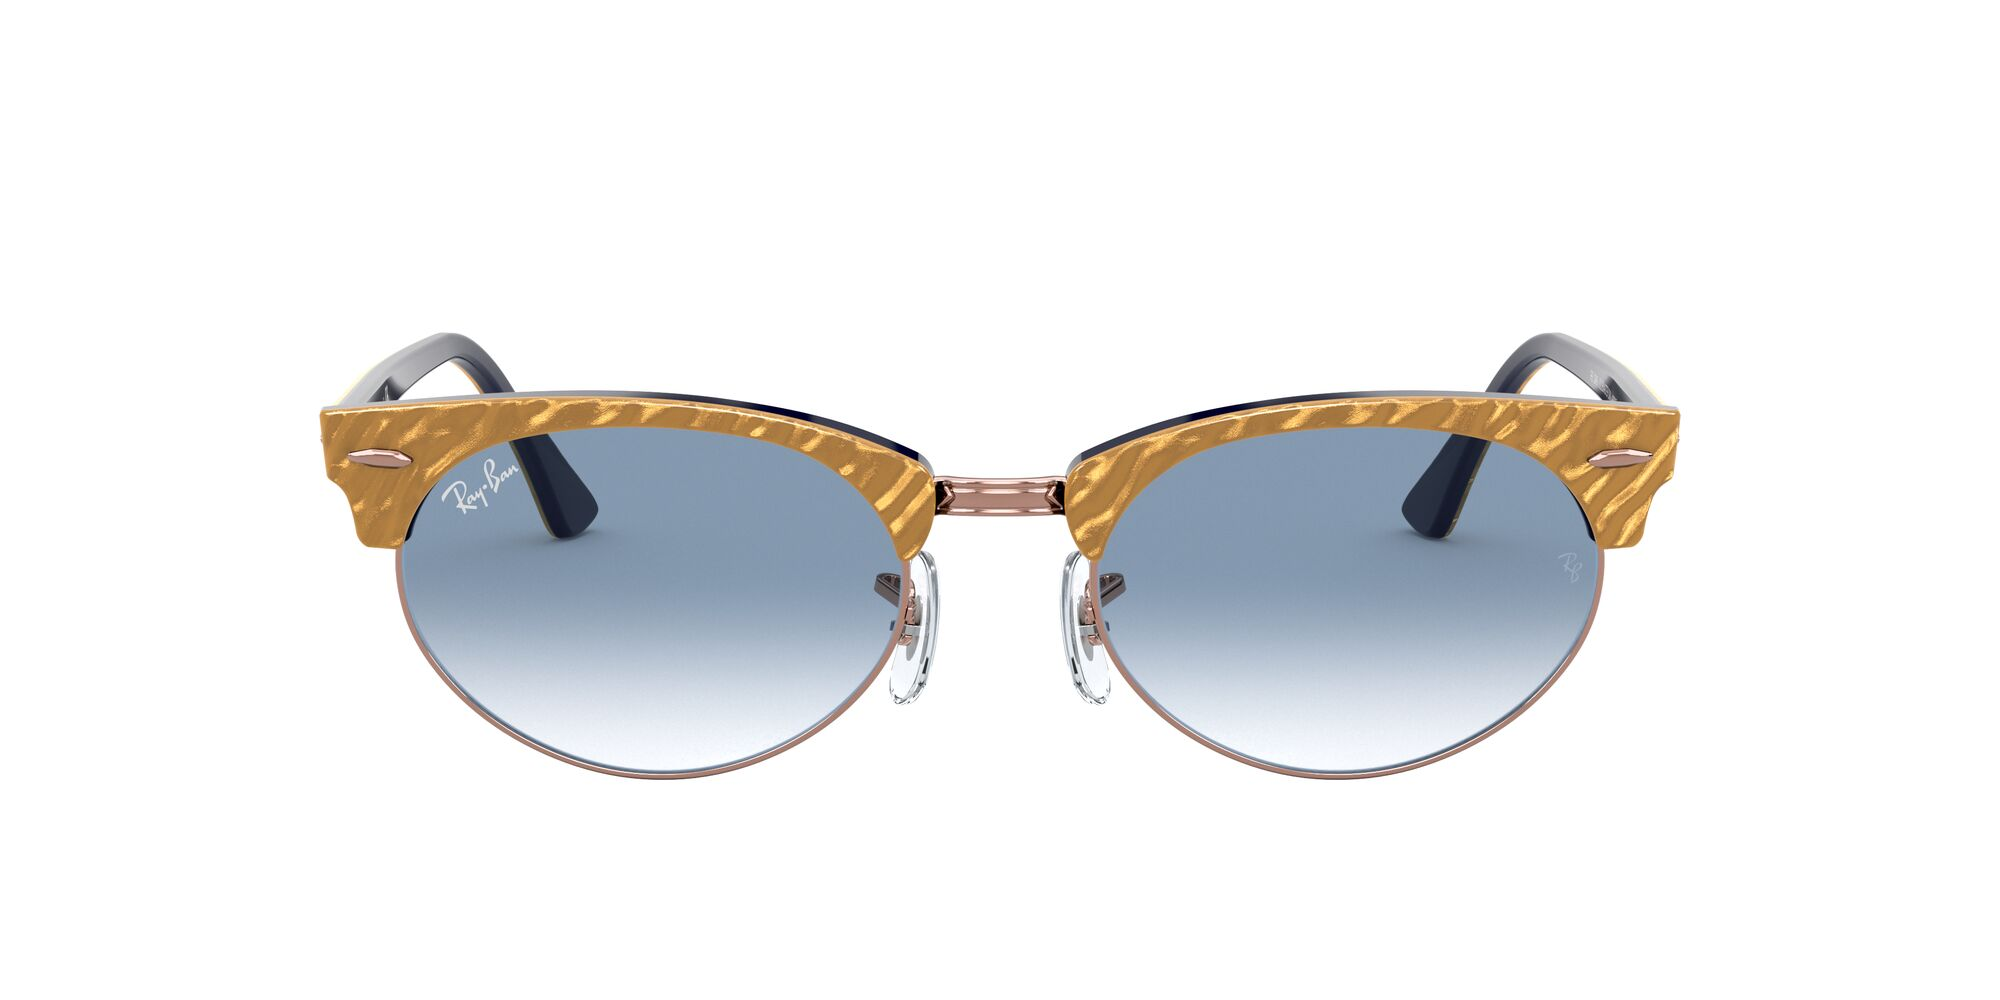 Front Ray-Ban Ray-Ban 0RB3946 13063F 51/19 Beige, Blauw/Blauw